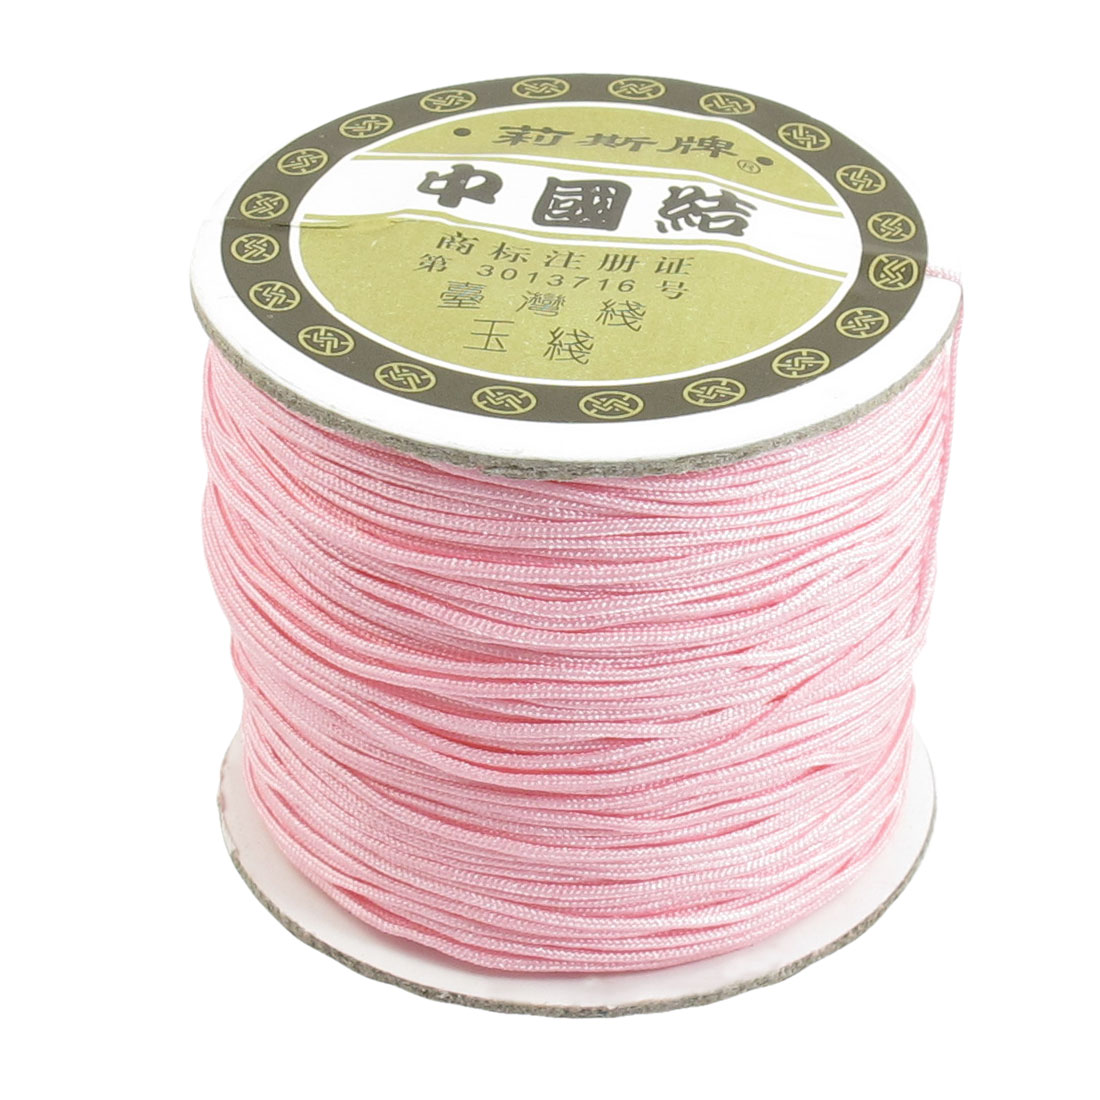 Nylon Bracelet Braided Rope Chinese Knot Rat Tail Cord Pink 1mm 150 Meters